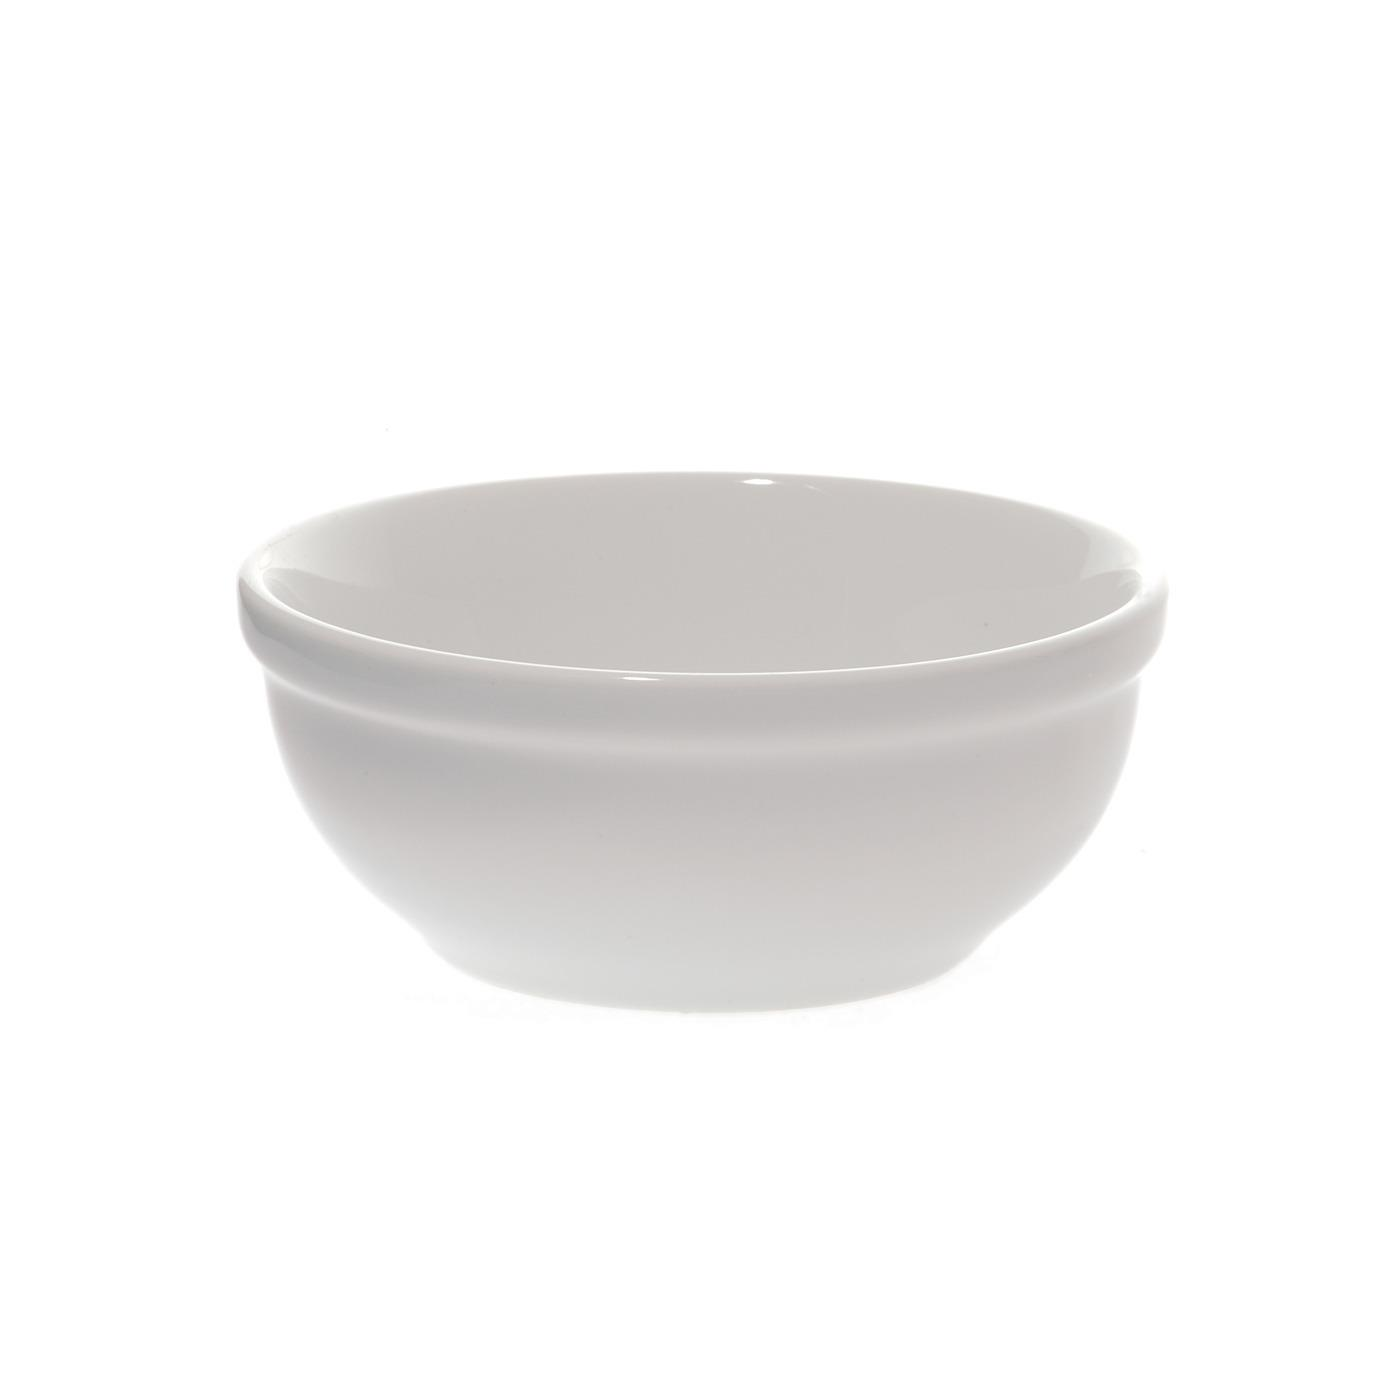 White Ceramic Round Chili Bowl